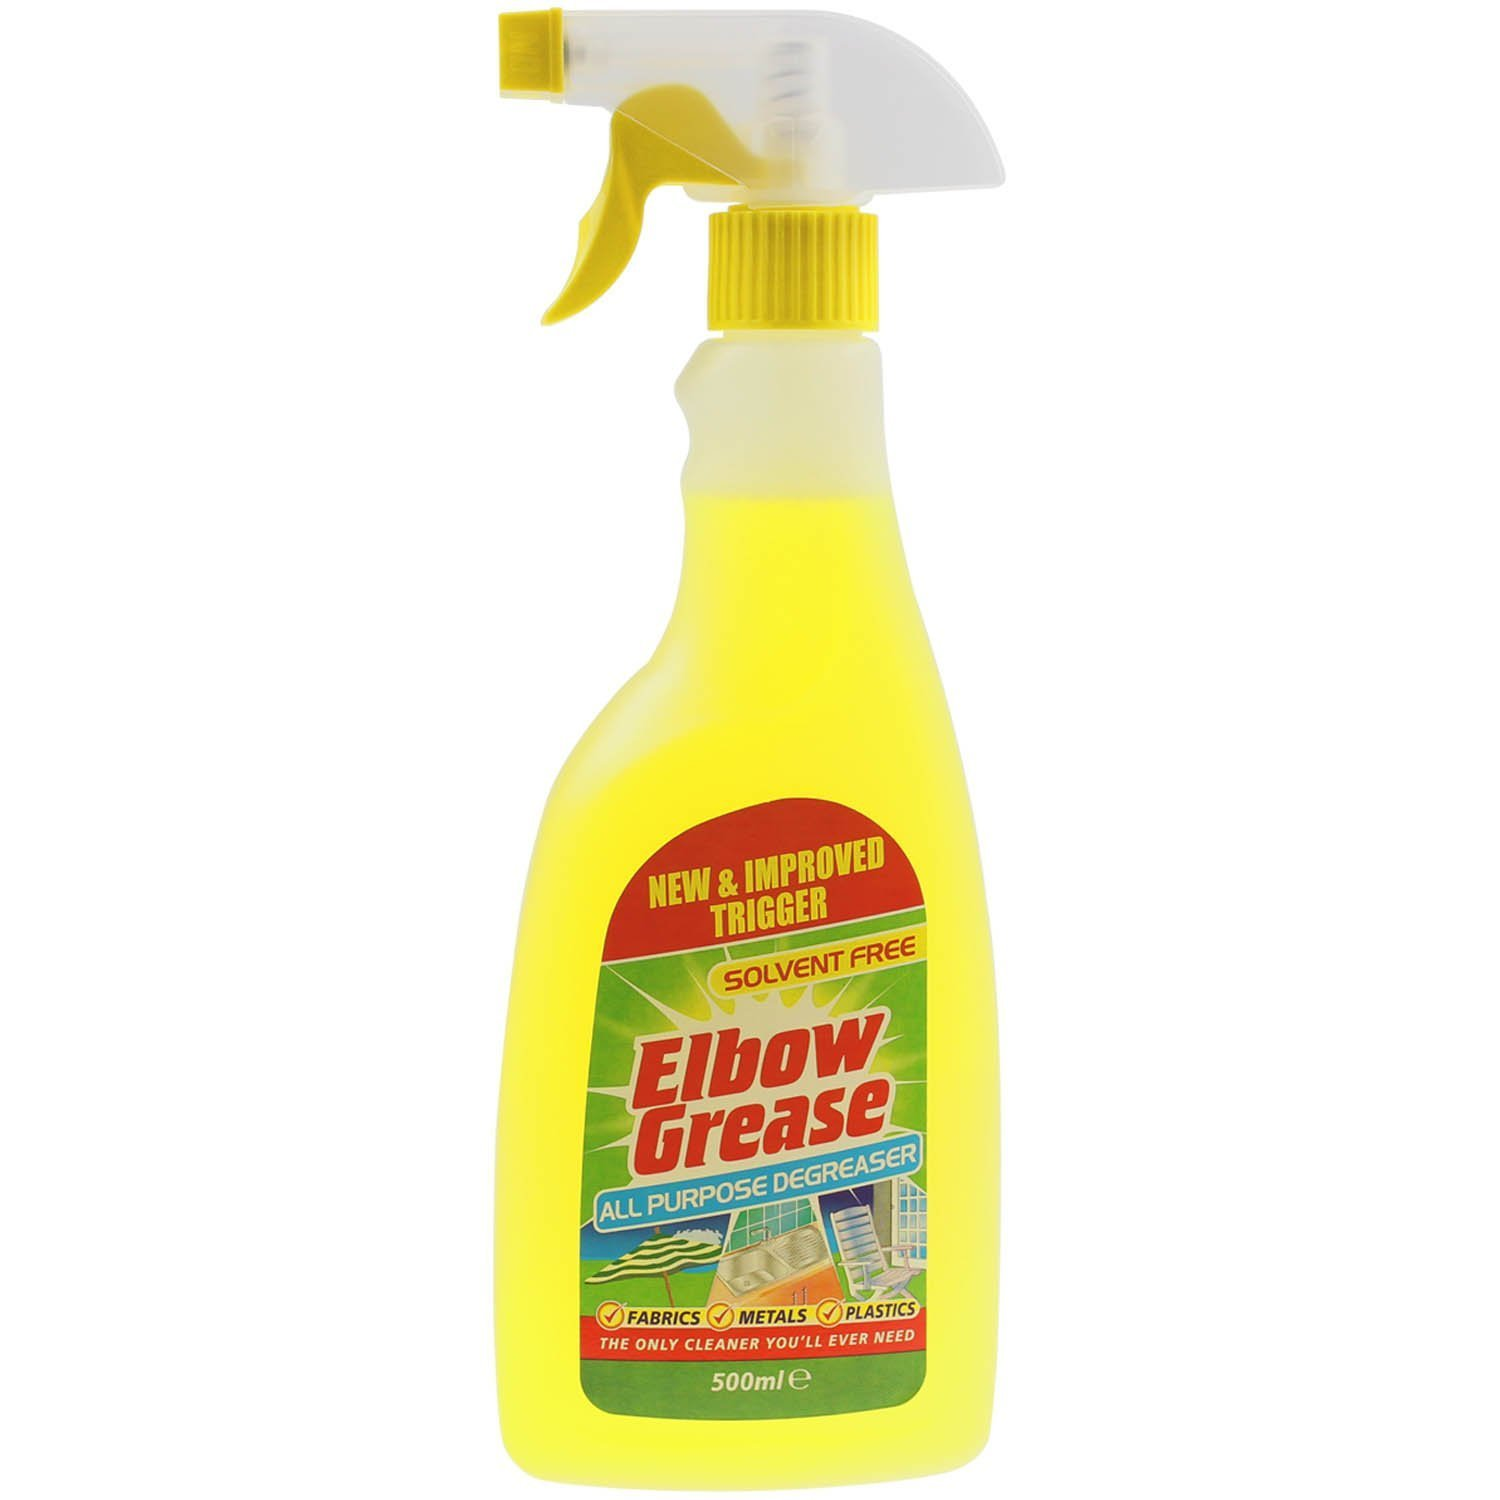 Elbow Greese 500ml All Purpose De-Greaser Only £1 at Amazon